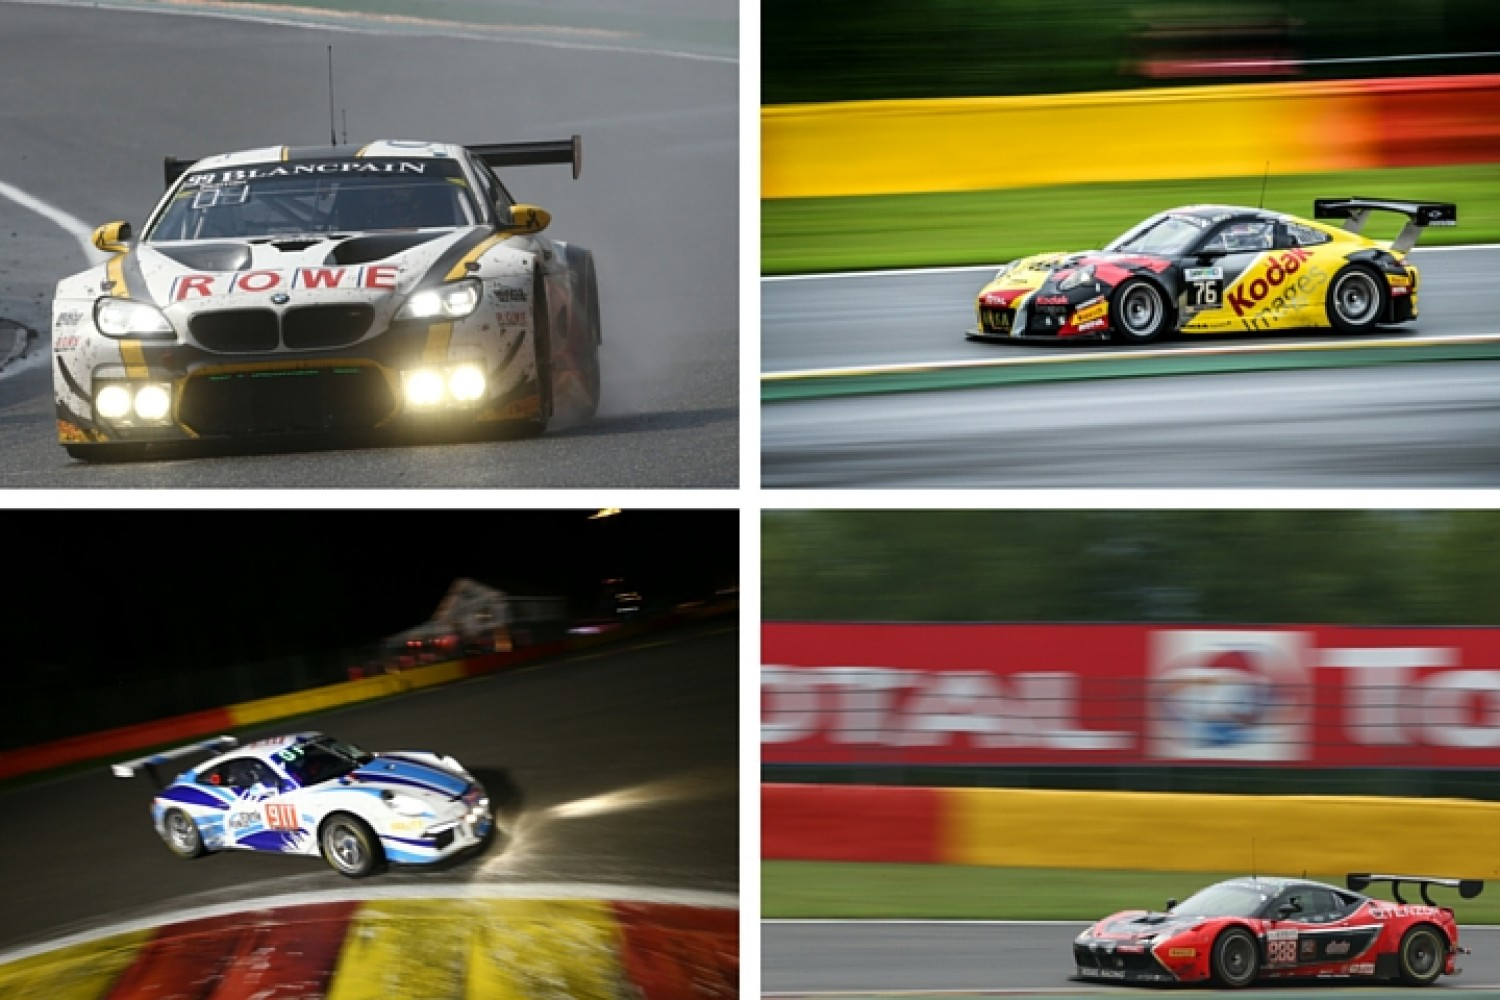 BMW wins eventful Total 24 Hours of Spa after epic finish